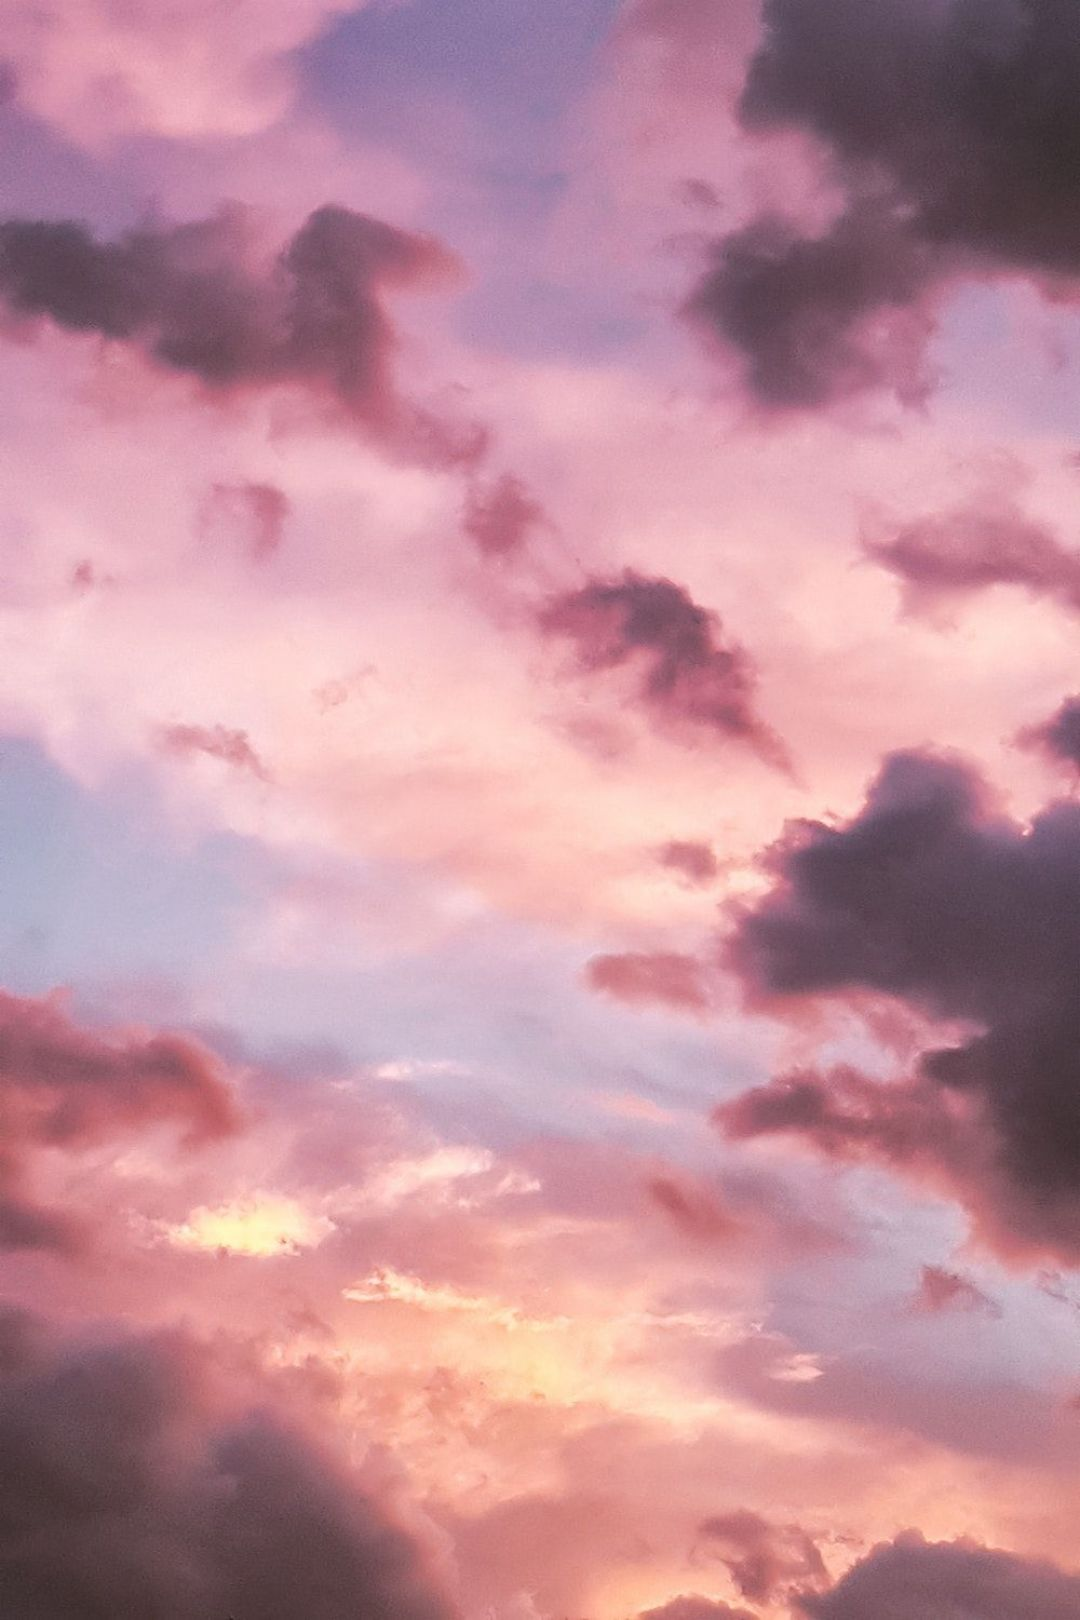 40 Aesthetic Blue Pink Android Iphone Desktop Hd Backgrounds Wallpapers 1080p 4k 1080x1620 2020